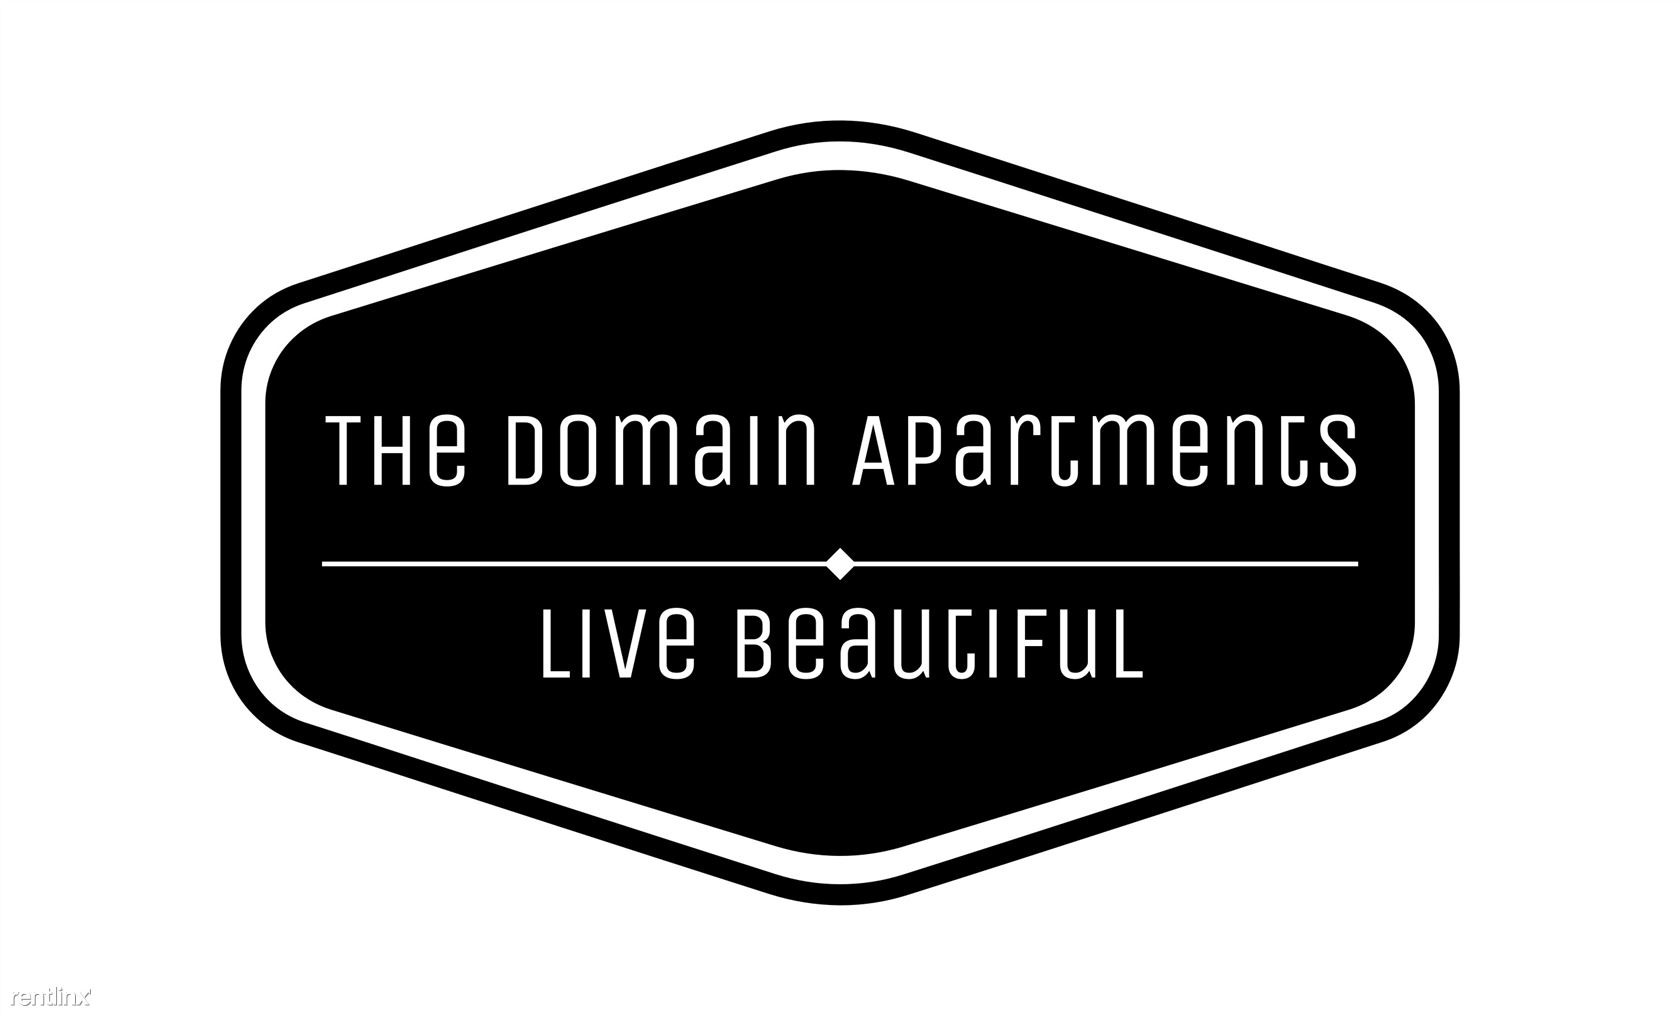 The Domain Apartments